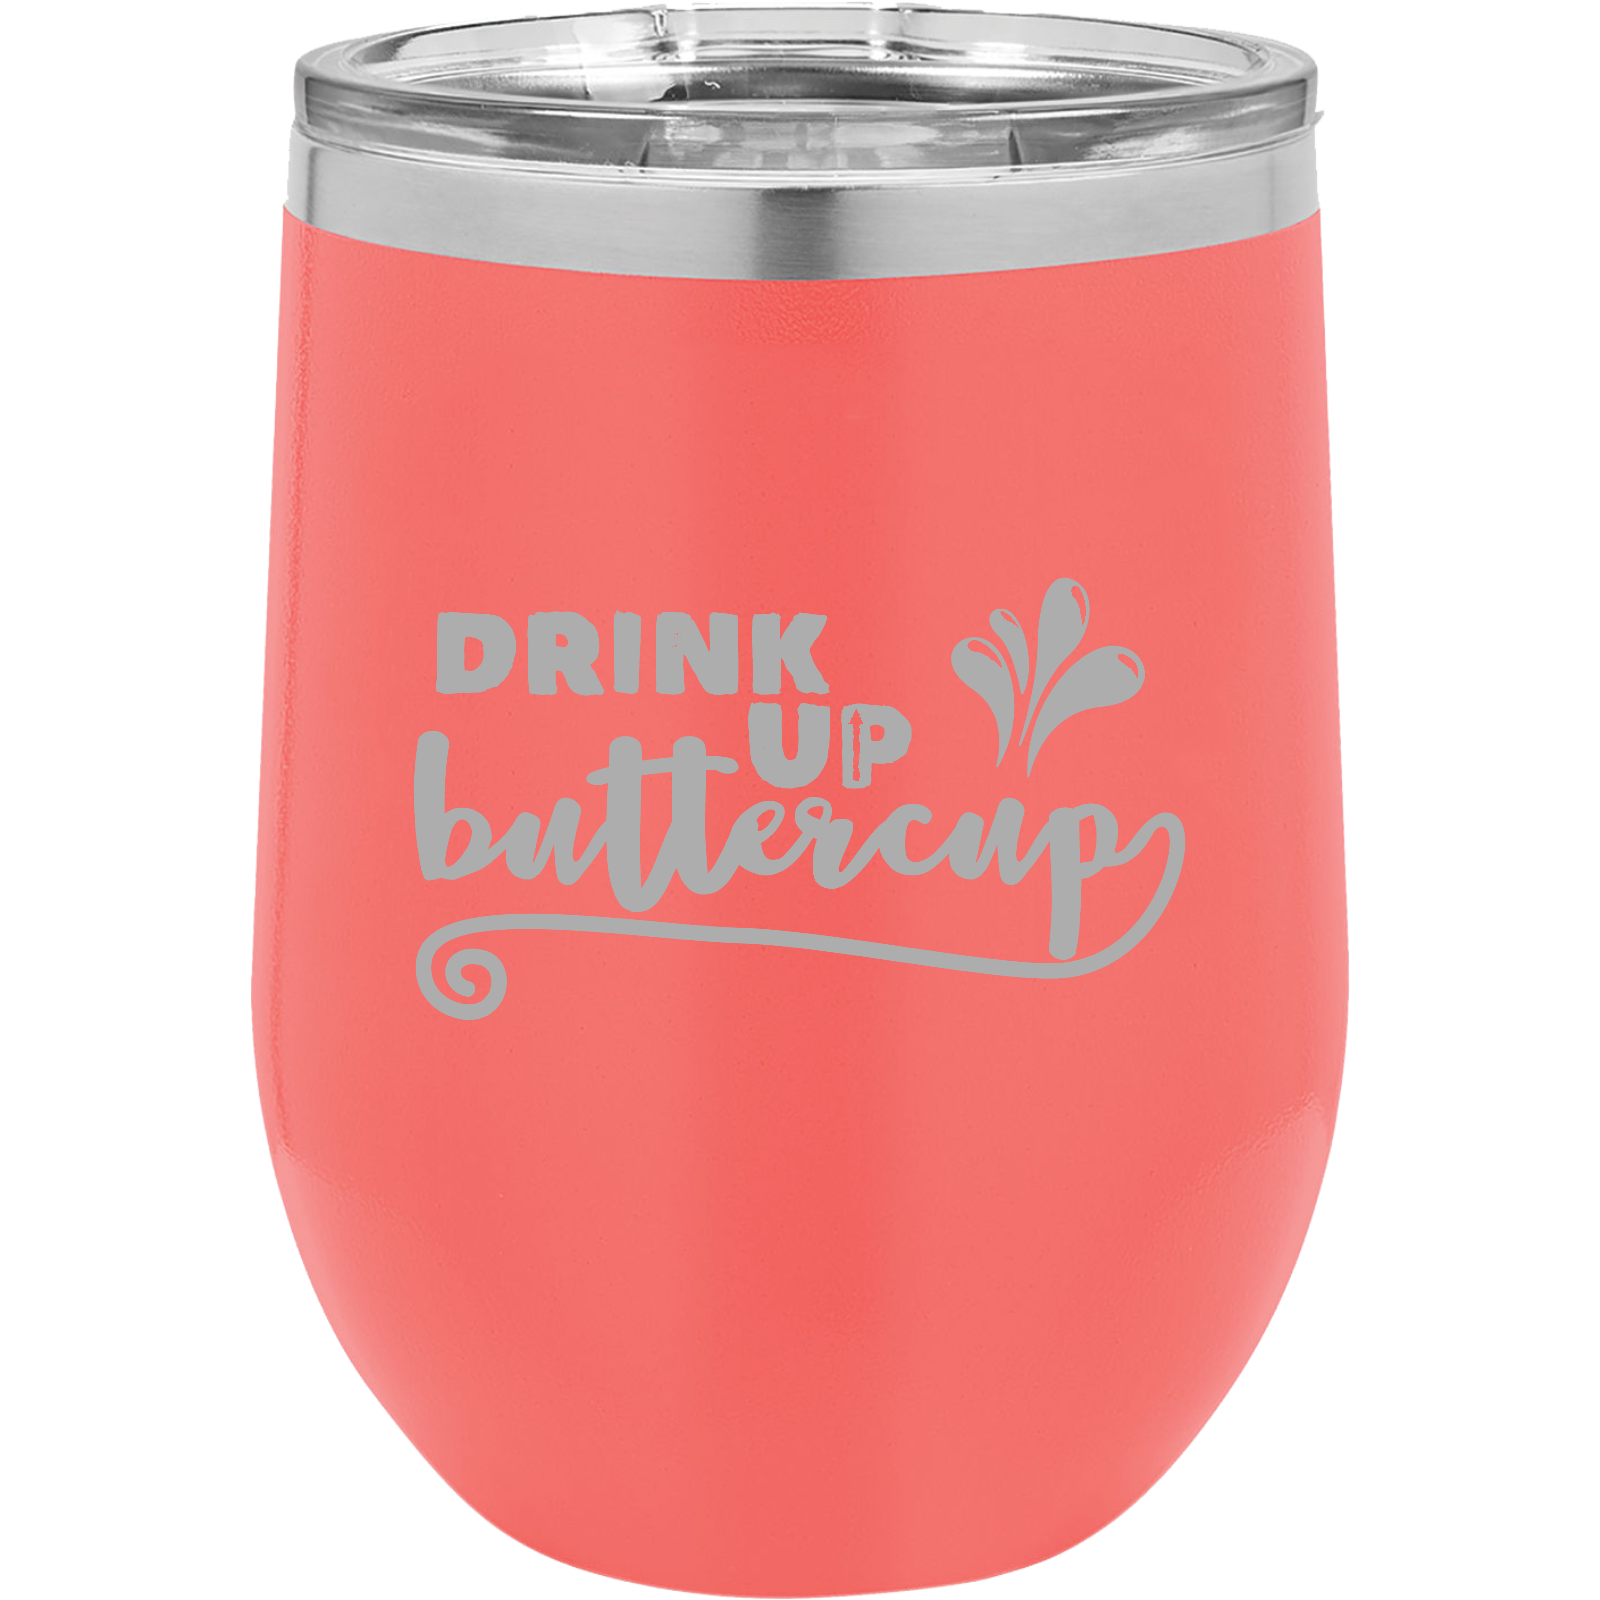 Drink up buttercup - 12oz. Engraved Stemless Wine Tumbler with Clear Lid